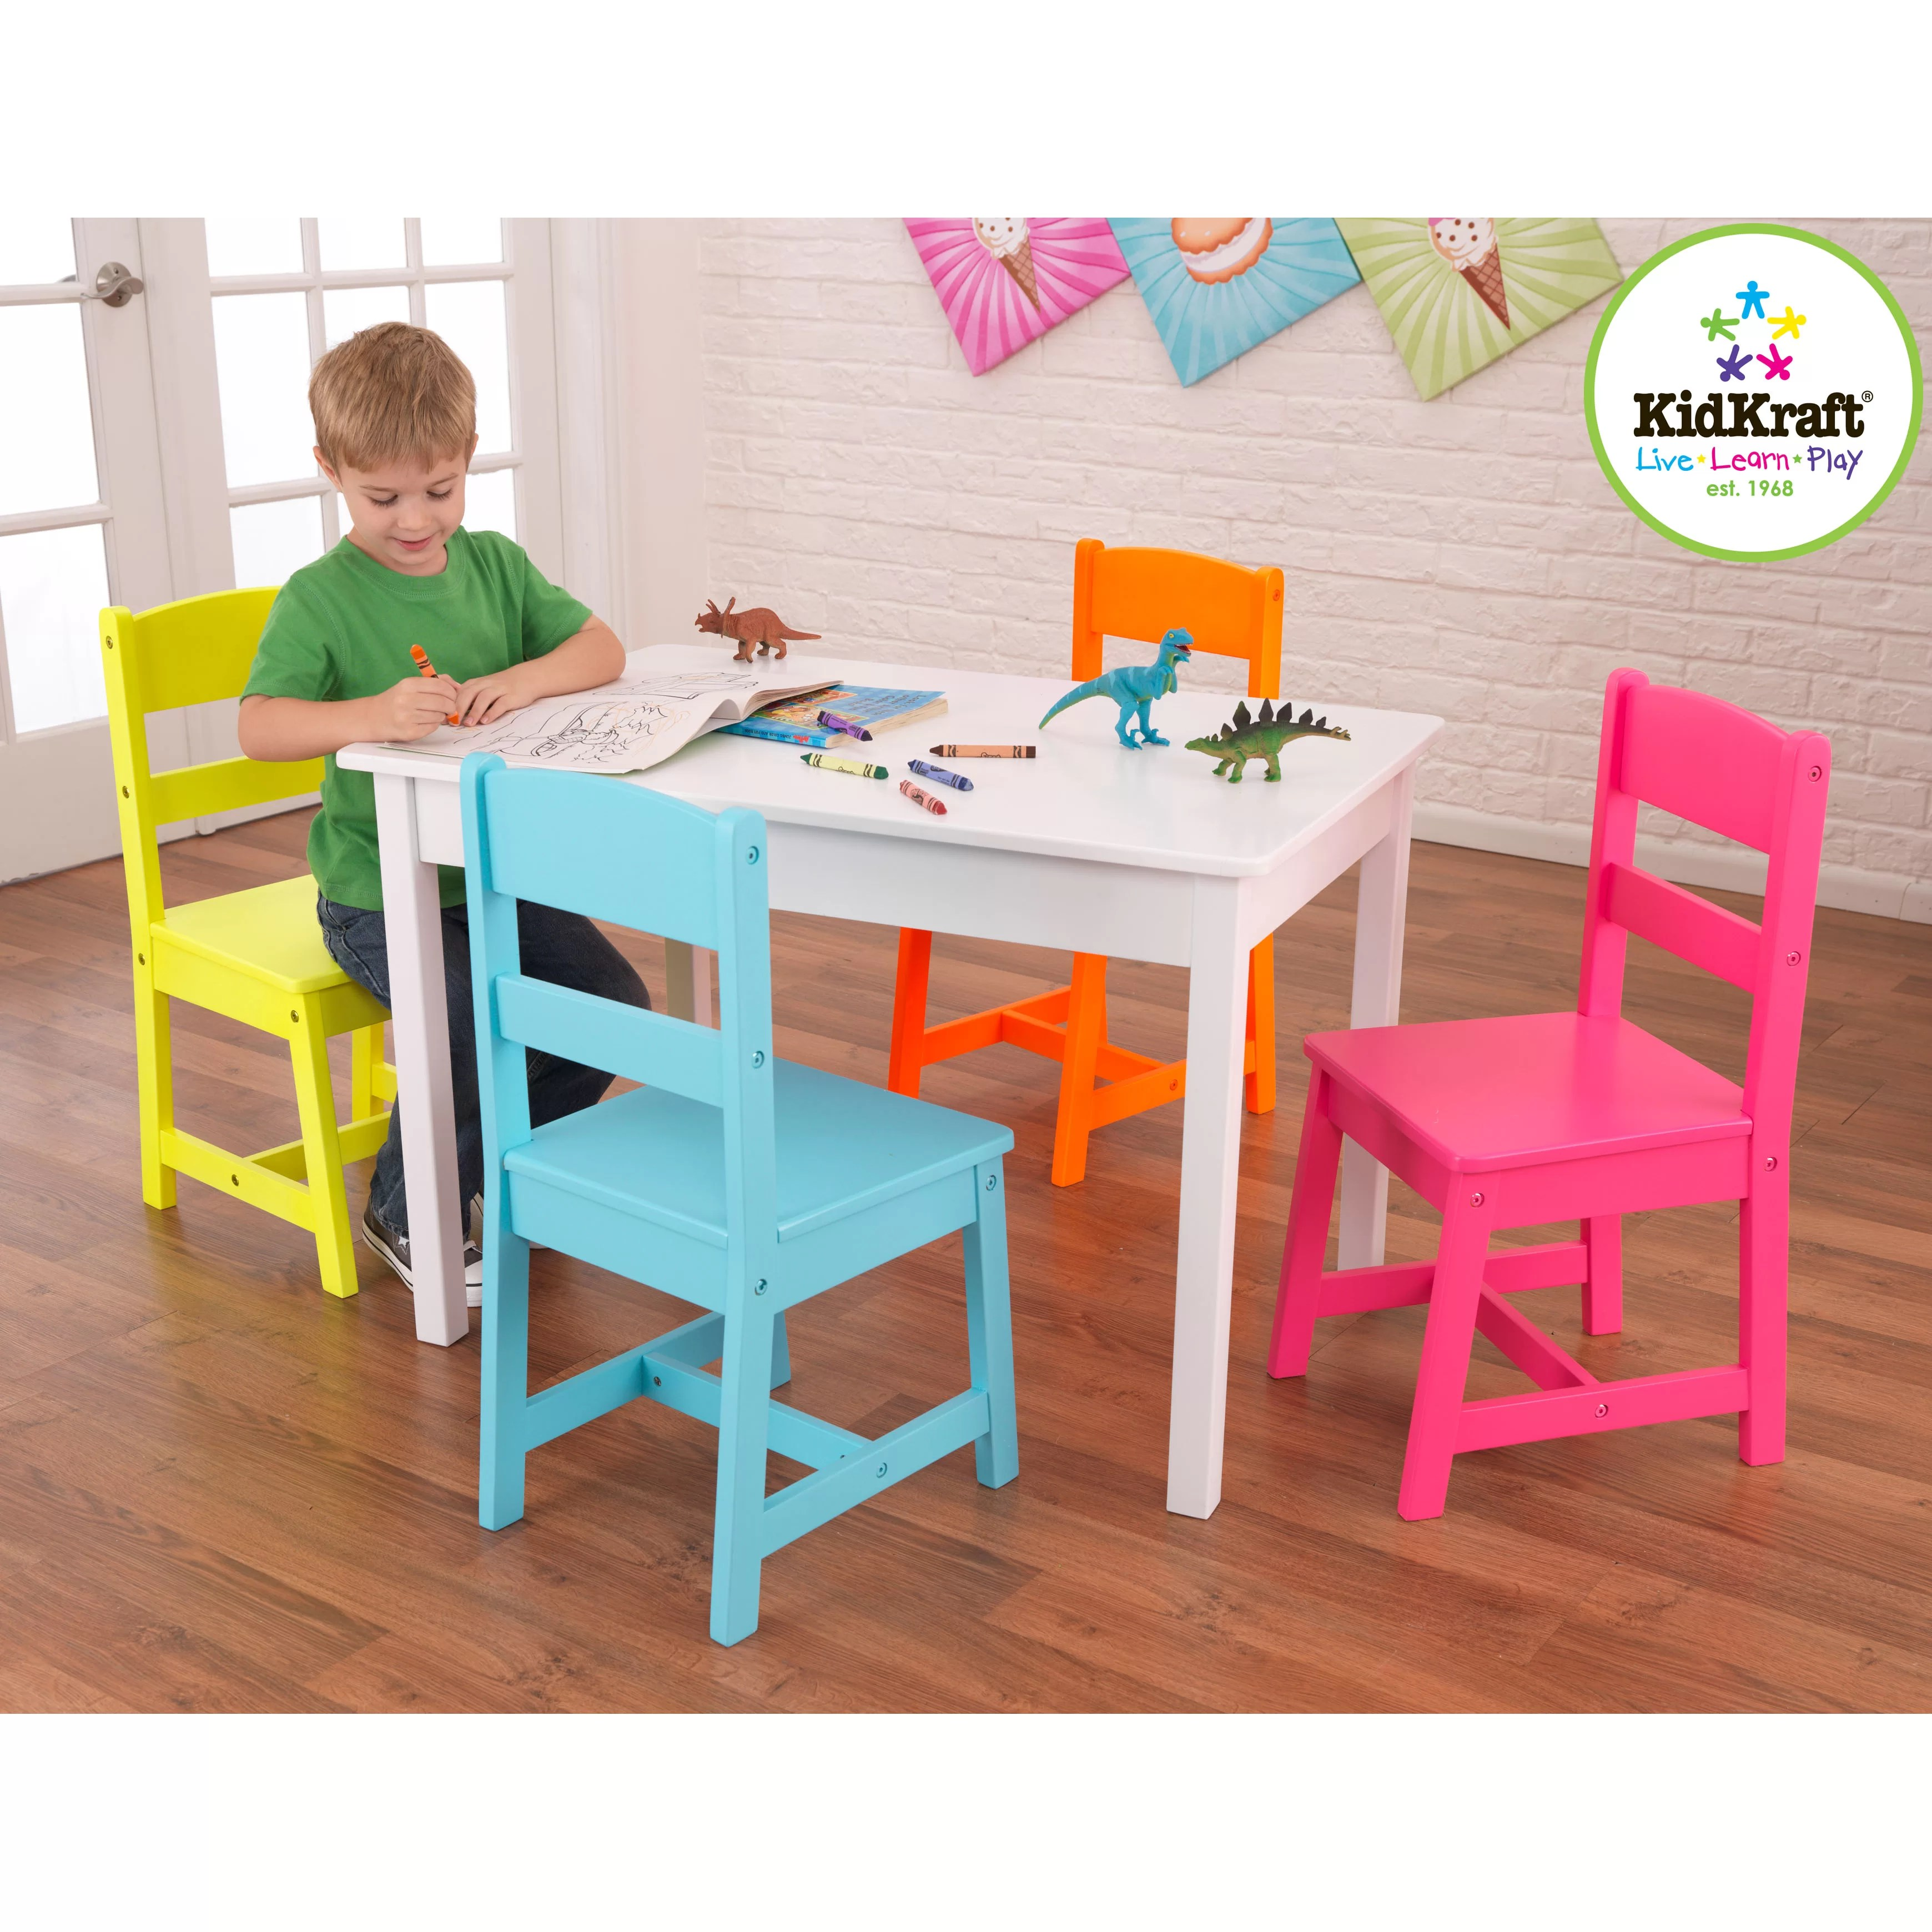 safety 1st 5 piece childrens table and chair set desk ratings kidkraft highlighter kids